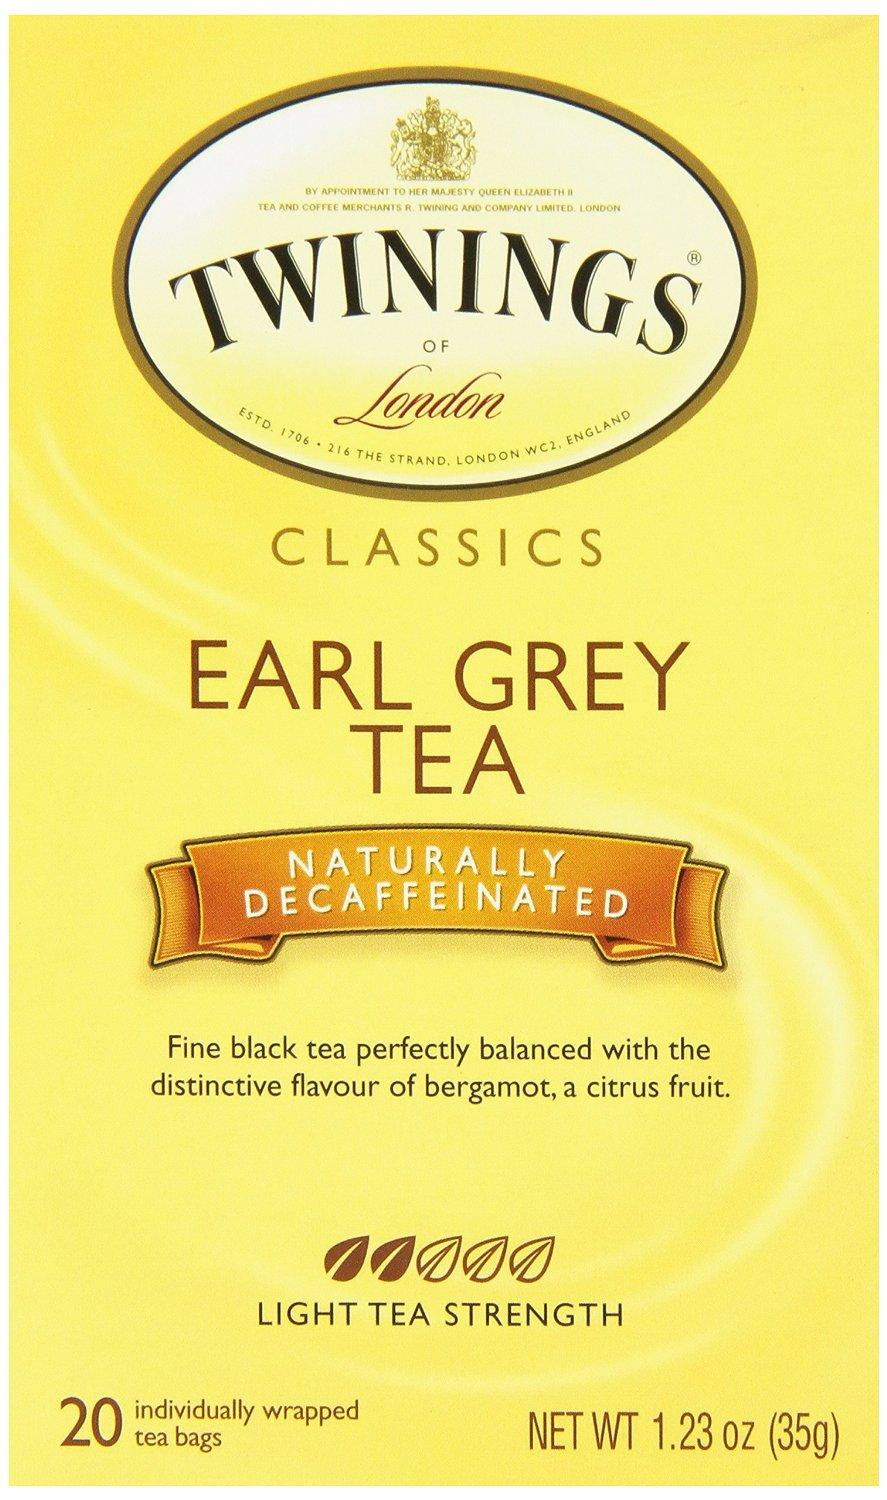 Twinings Decaf Black Tea, Earl Grey, 20 Count Bagged Tea (6 Pack)